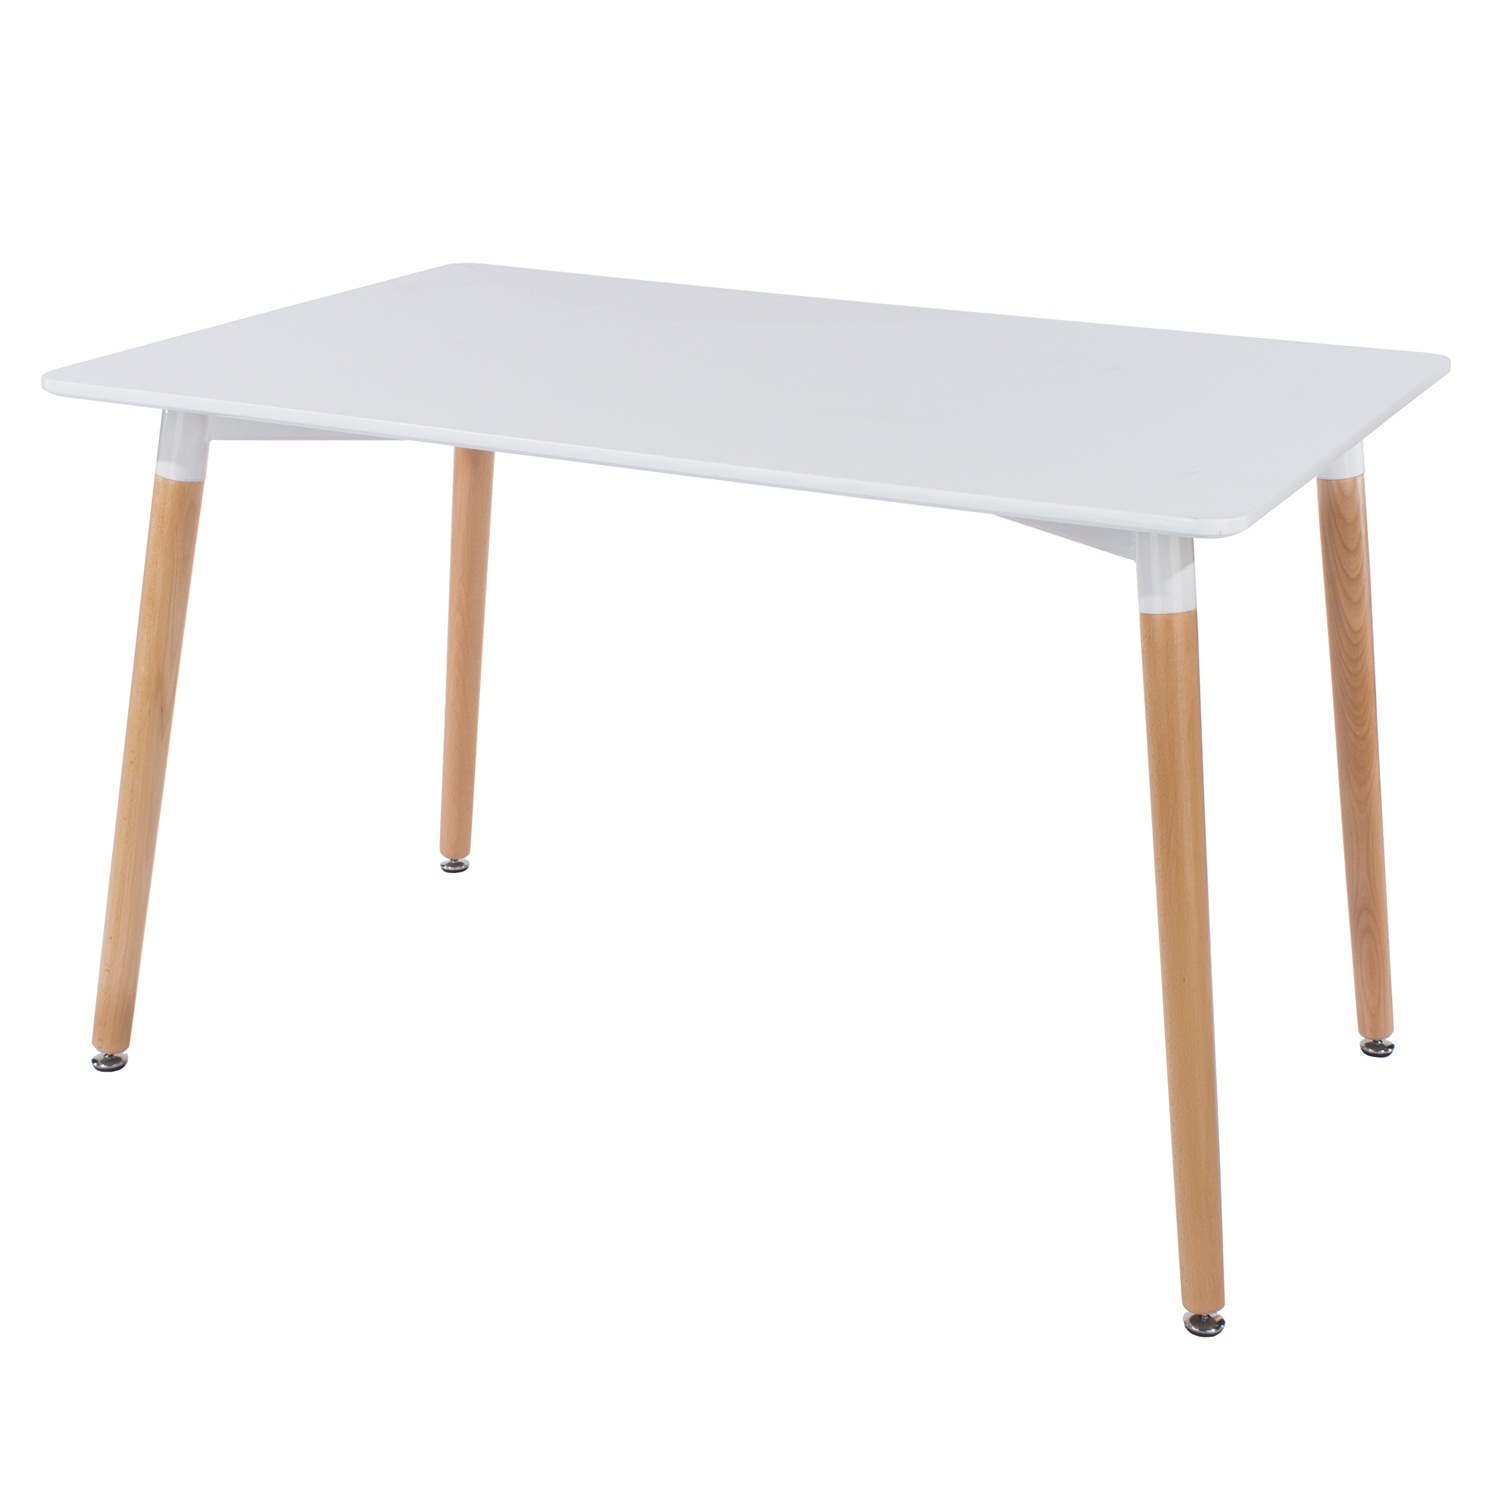 rectangular table with wooden legs, white